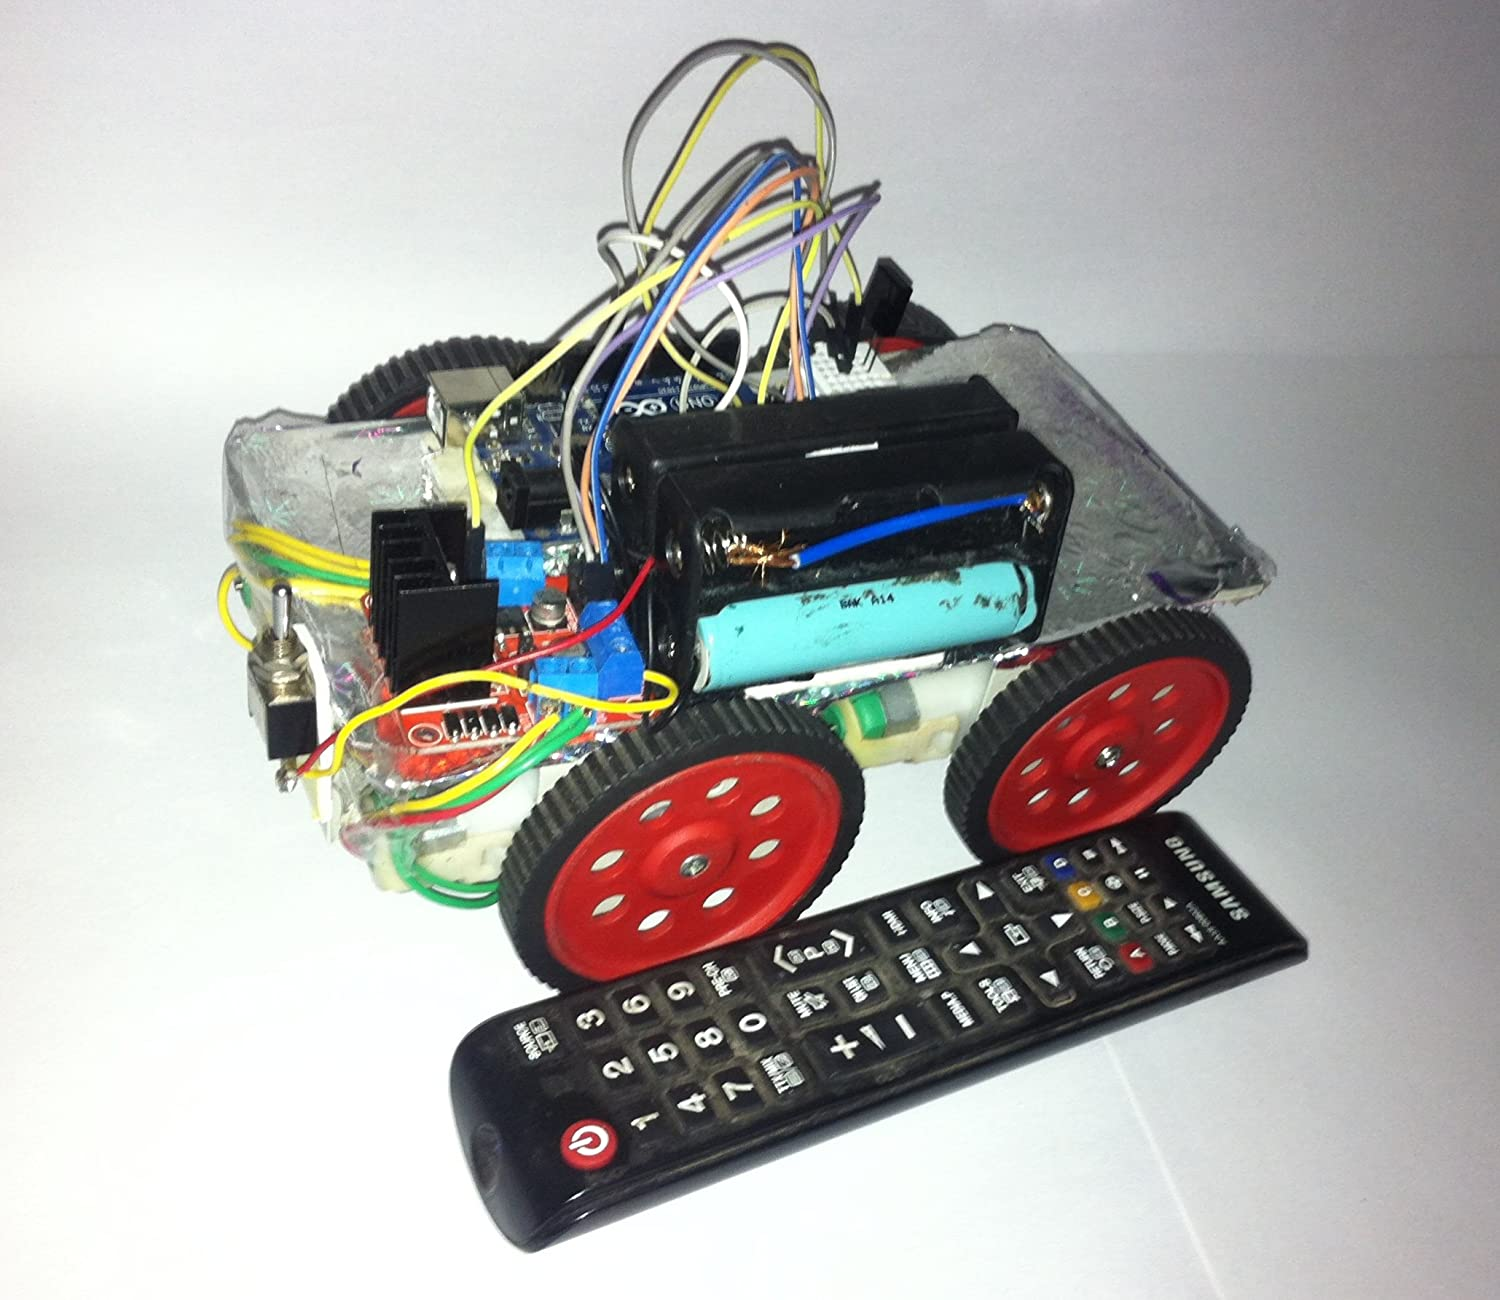 Infrared t v remote controlled robot using arduino uno